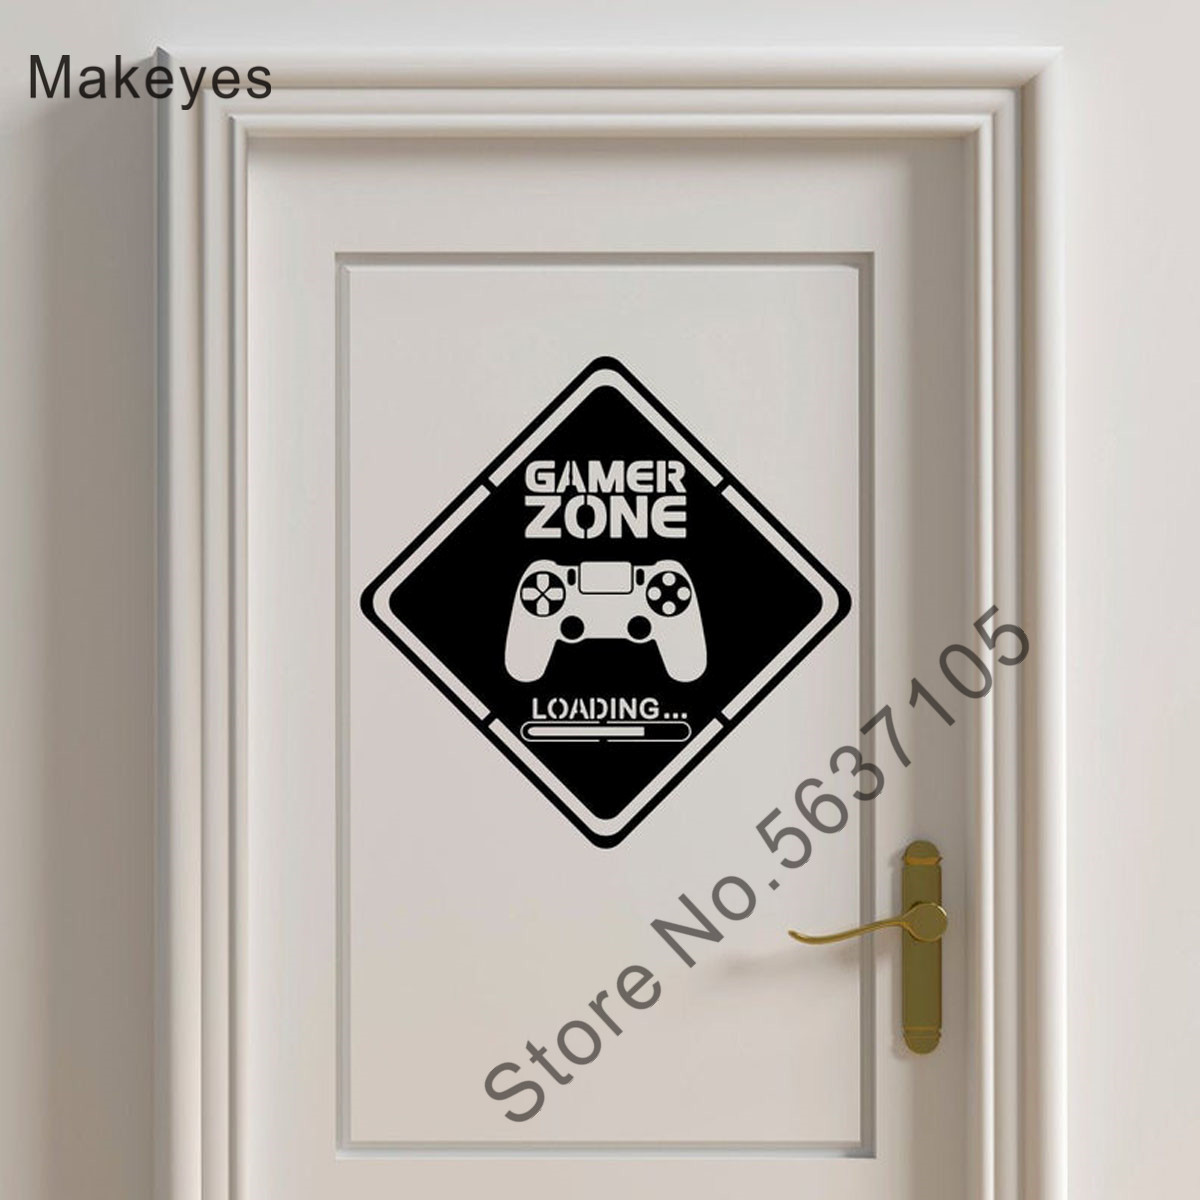 Makeyes Game Zone Wall Stickers Room Doors Decor Gamer Wall Decoration Painted Wallpaper Vinyl Design Games Zone Art Decal Q005